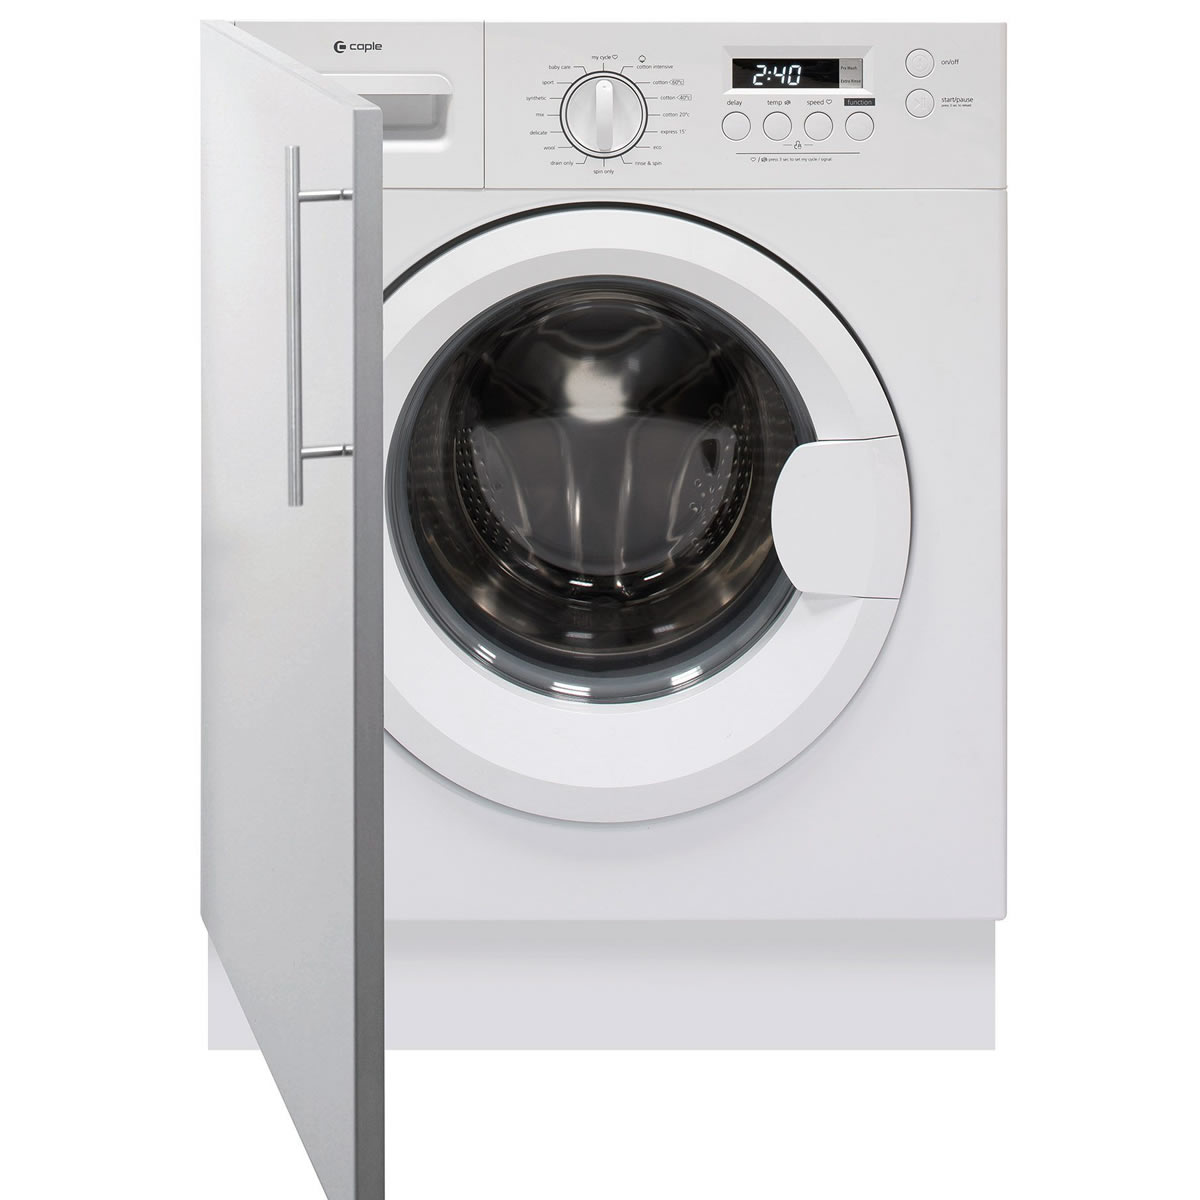 Image of 1200rpm Integrated Washing Machine 6kg Load Class A++